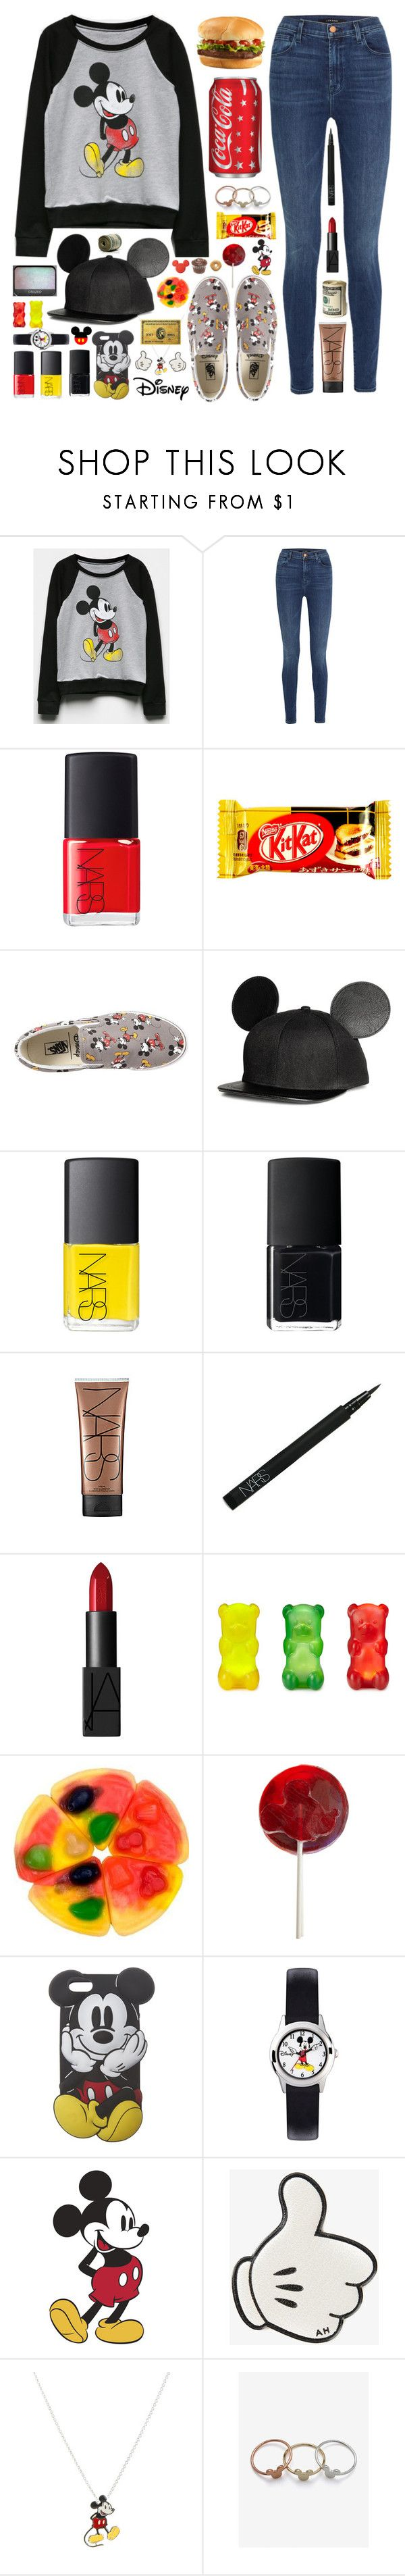 """""""Lazy day with my friends 🌼"""" by yufrenny ❤ liked on Polyvore featuring Mighty Fine, J Brand, NARS Cosmetics, Vans, Disney, Wet Seal, Buy Seasons, Anya Hindmarch and Wilton"""